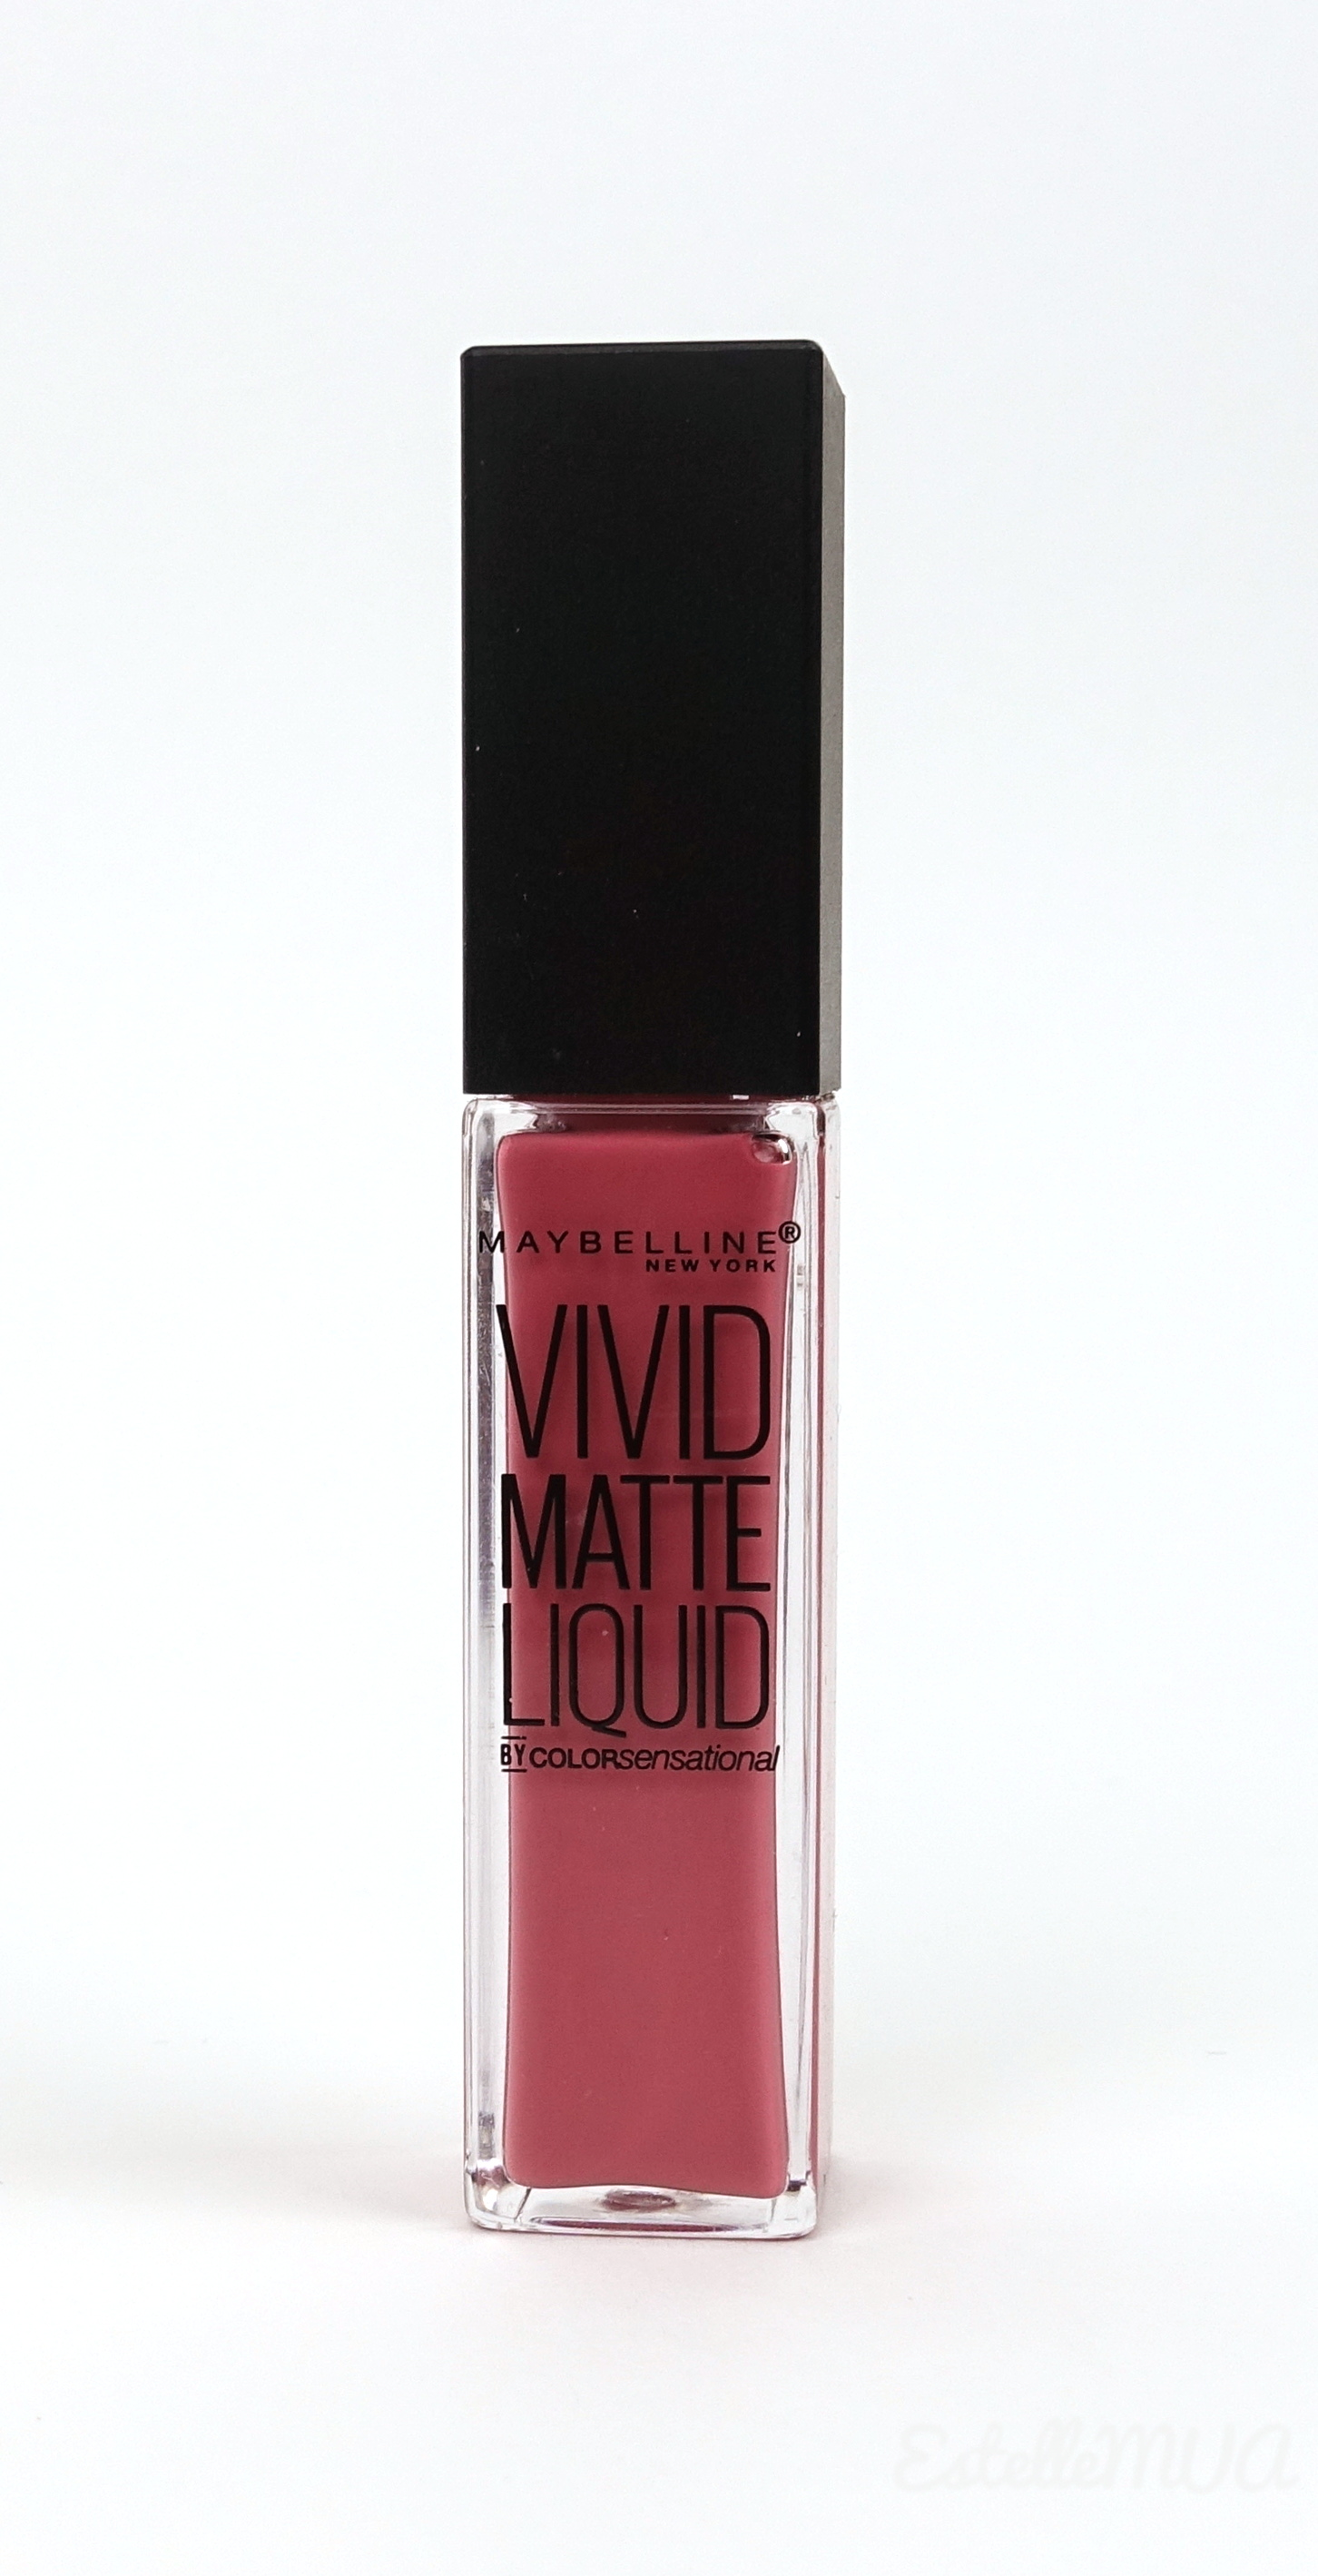 Maybelline Vivid Matte Liquid 05 Nude Flush Tube packaging